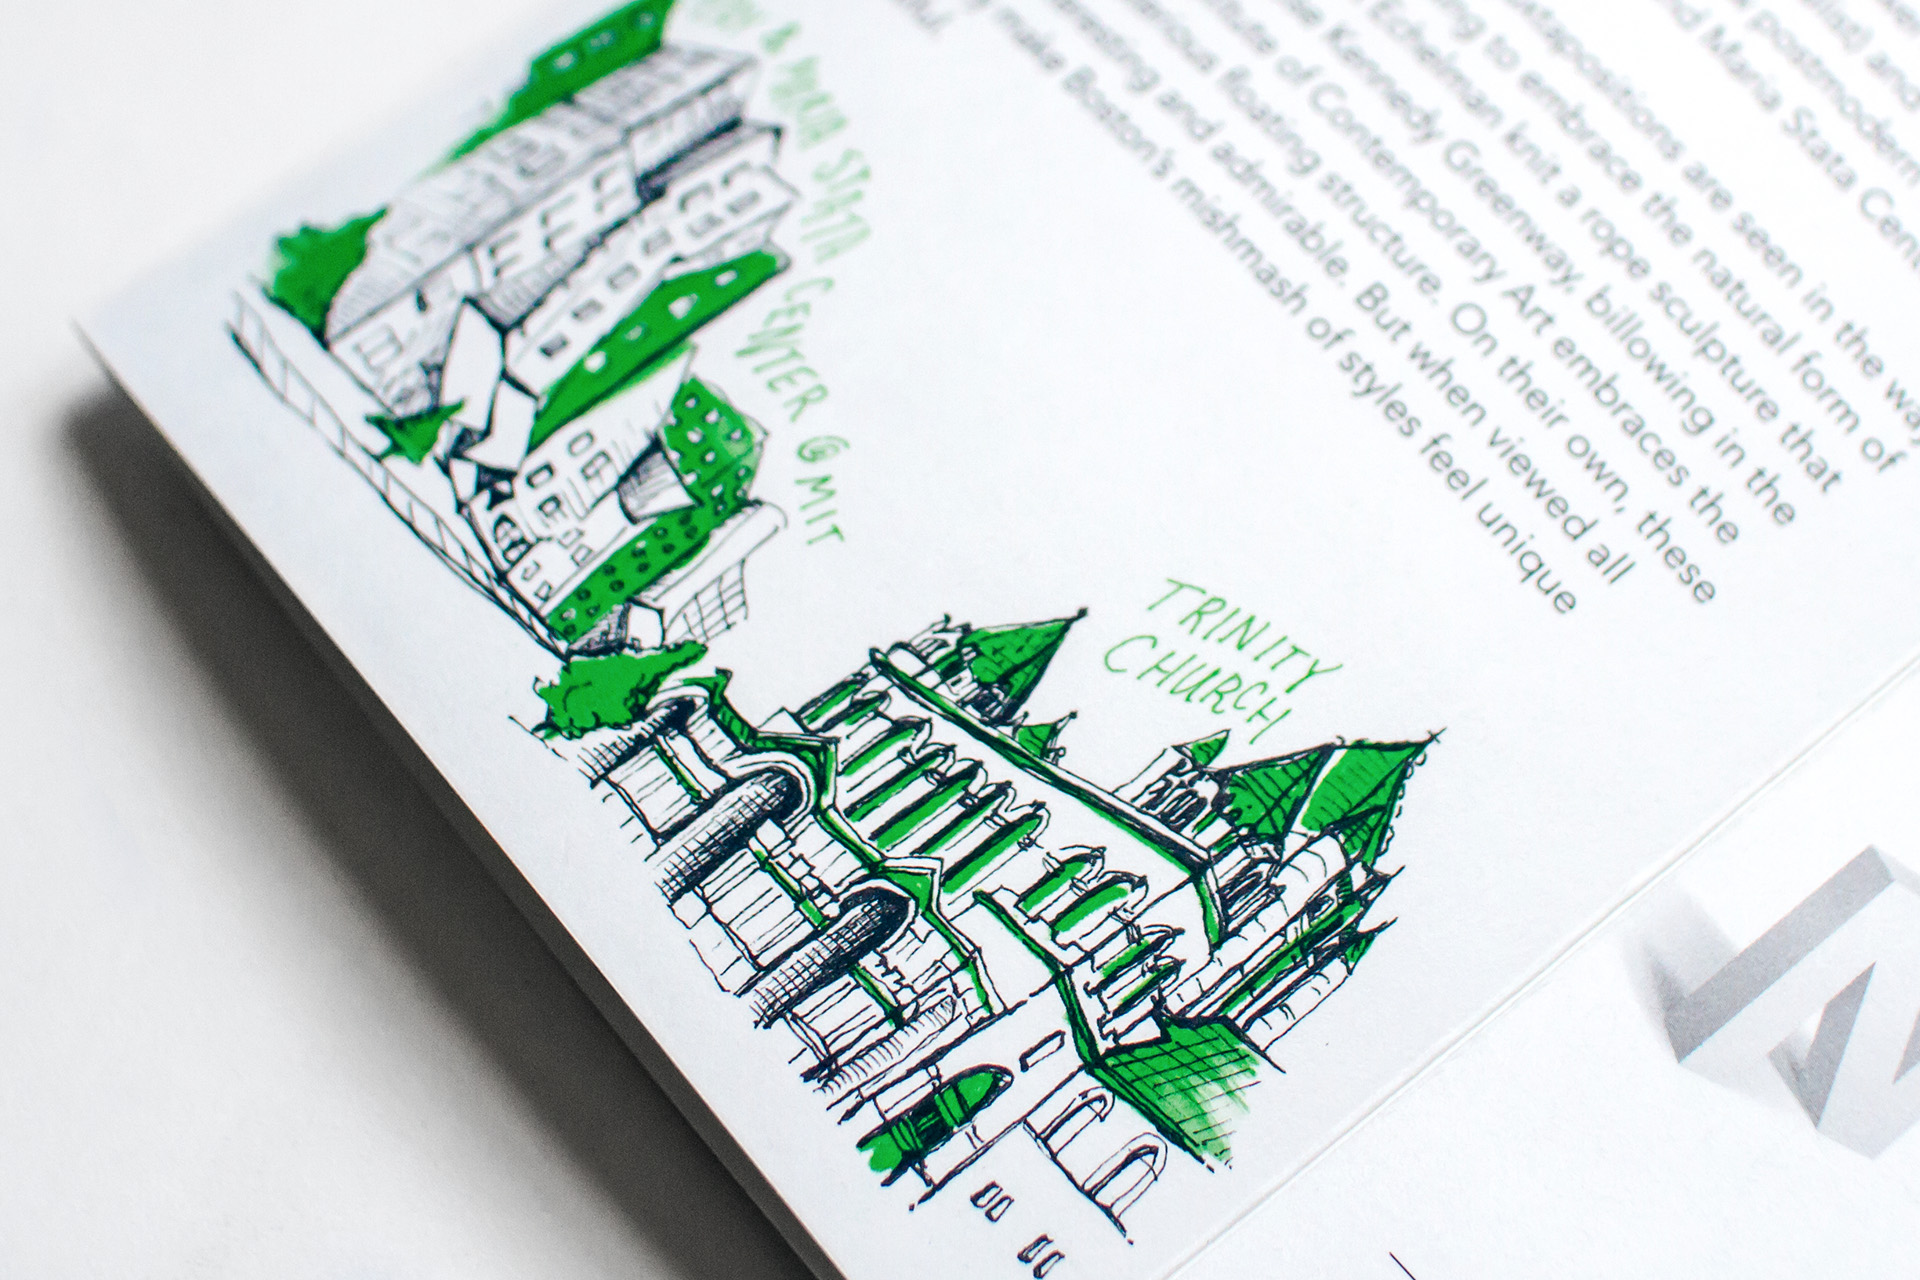 Detail of illustration of the Ray and Maria Stata Center at MIT next to the architecture of the Trinity Church in Boston.